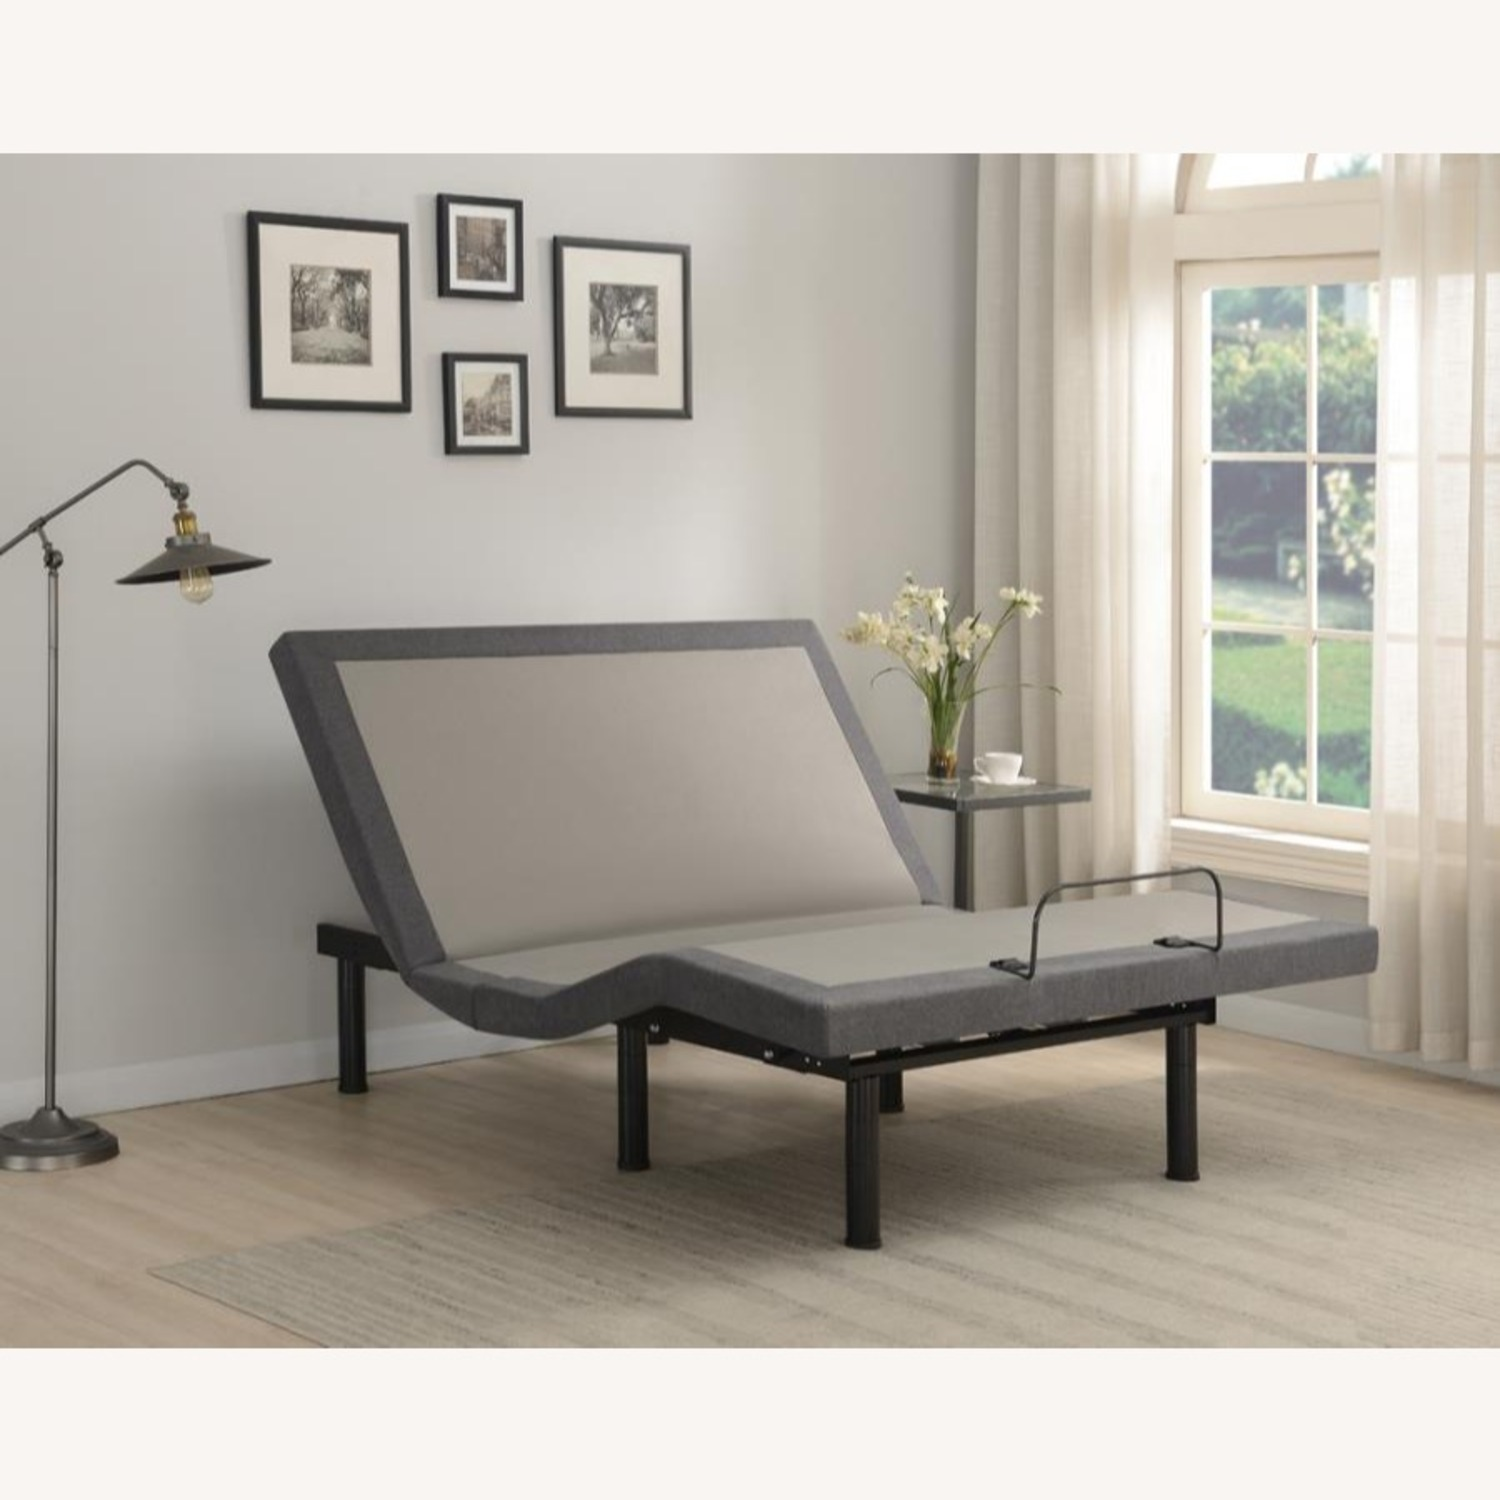 Adjustable King Bed Base In Grey Fabric - image-6